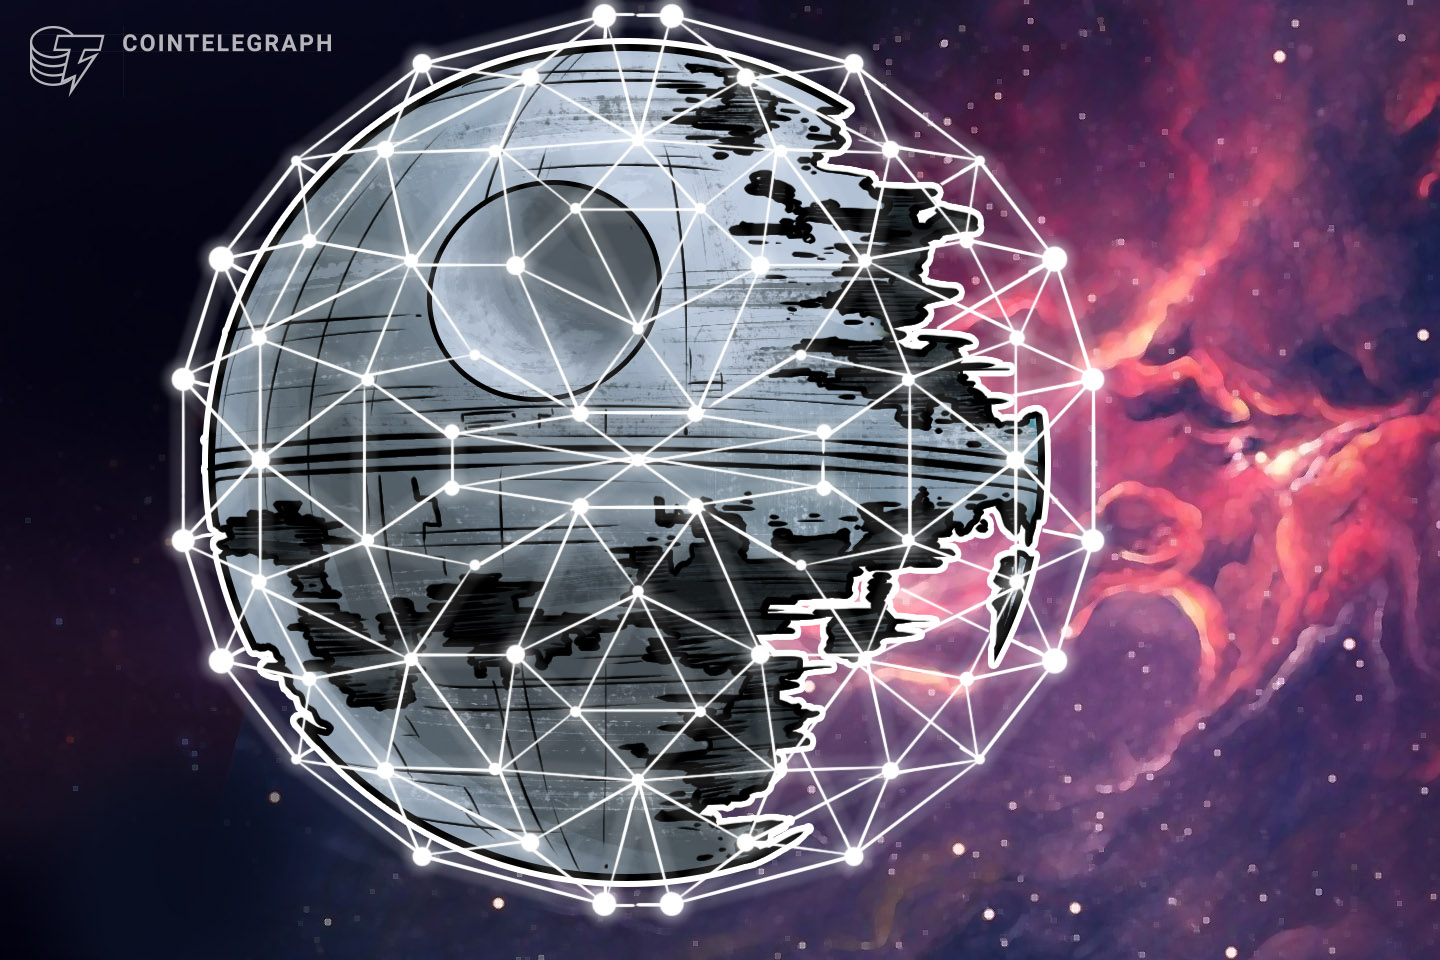 Blockchain and Smart Contracts Have a 'Dark Side', Says Researcher